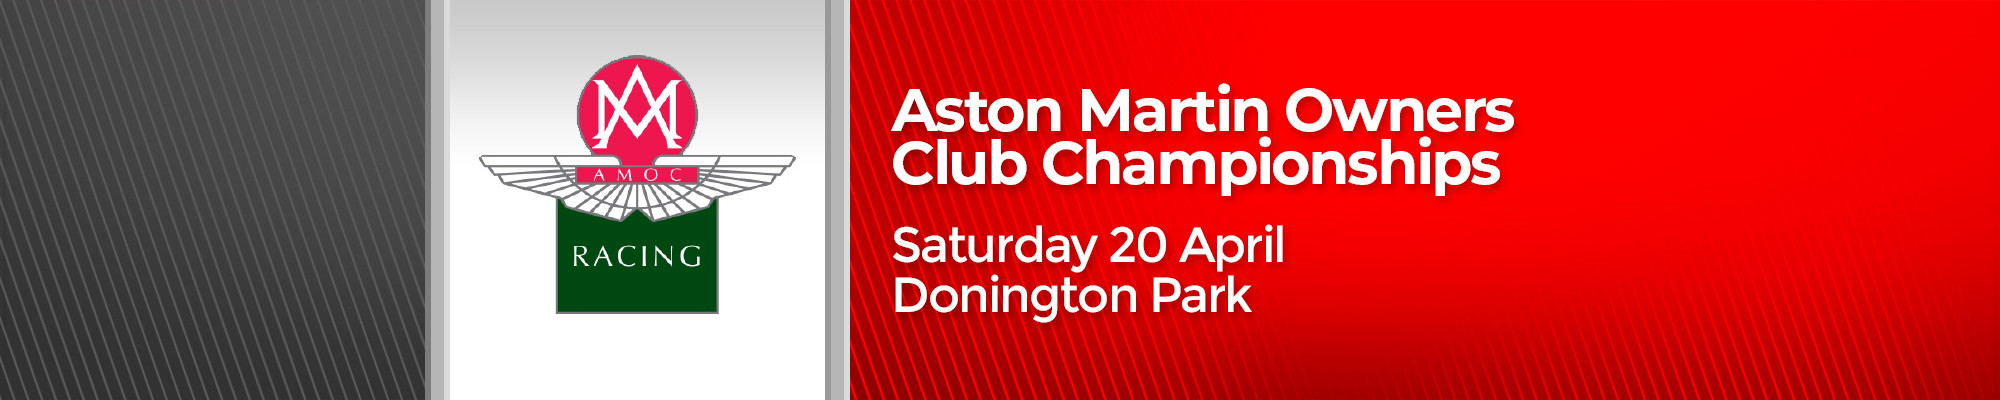 Aston Martin Owners' Club Championships